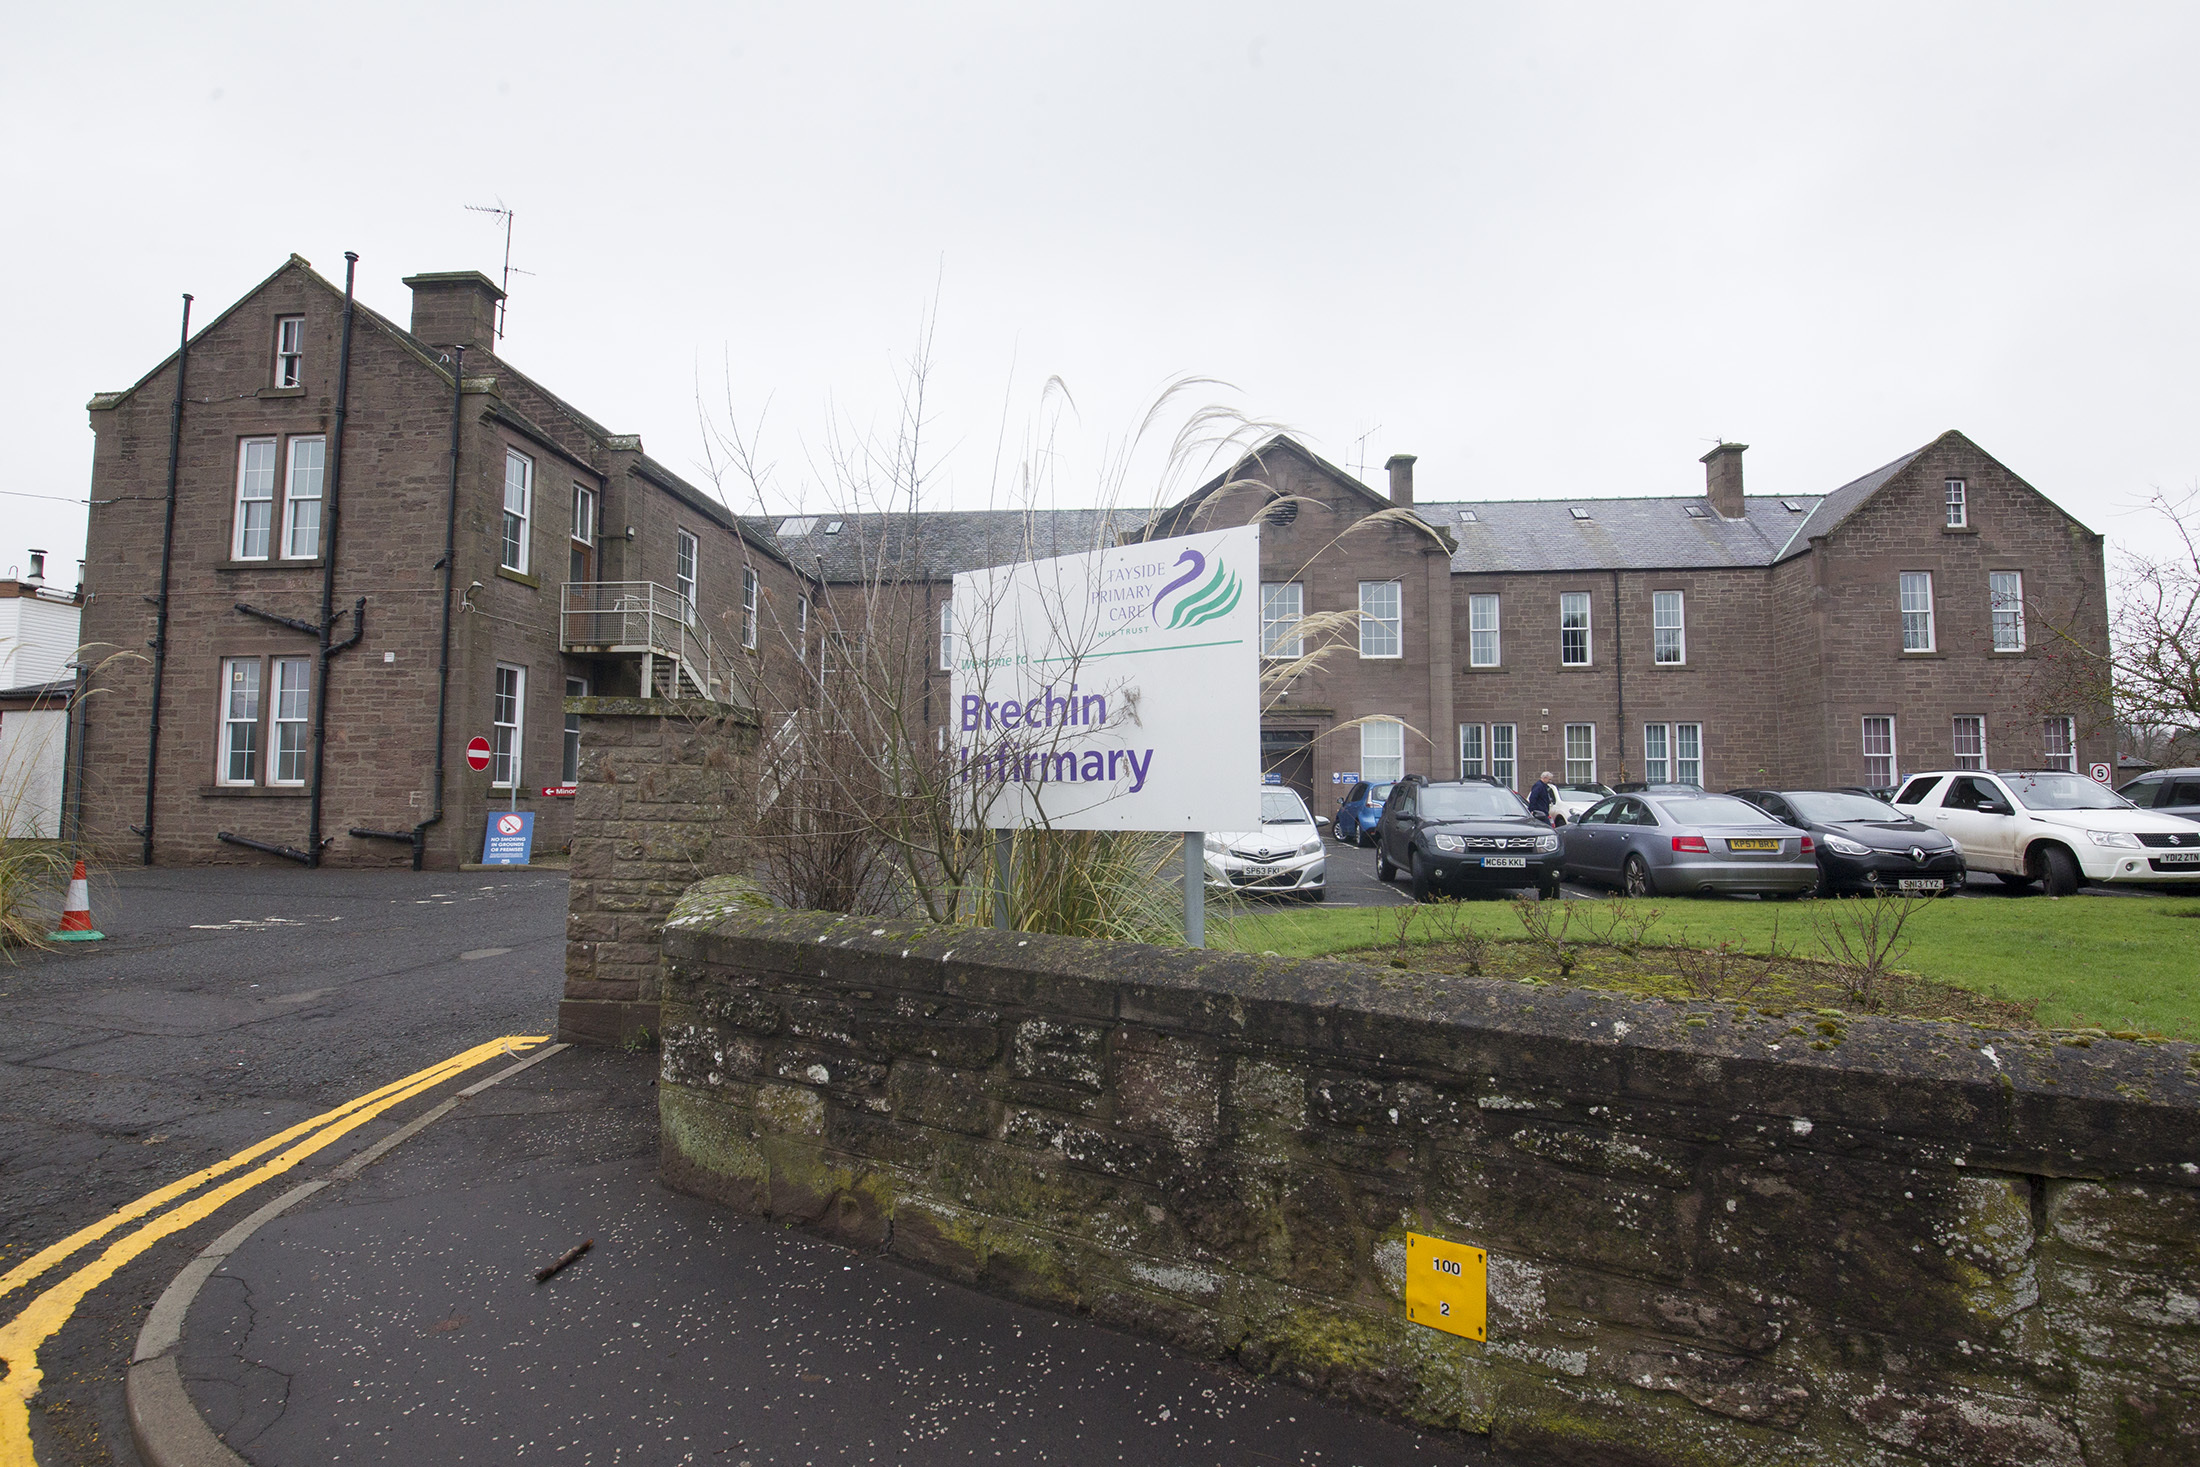 Under the new plans, inpatient care will not be delivered from Brechin Infirmary, which has been non-operational since October 2015 or from Montrose Infirmary where the environment has been branded no longer suitable for the delivery of modern healthcare.